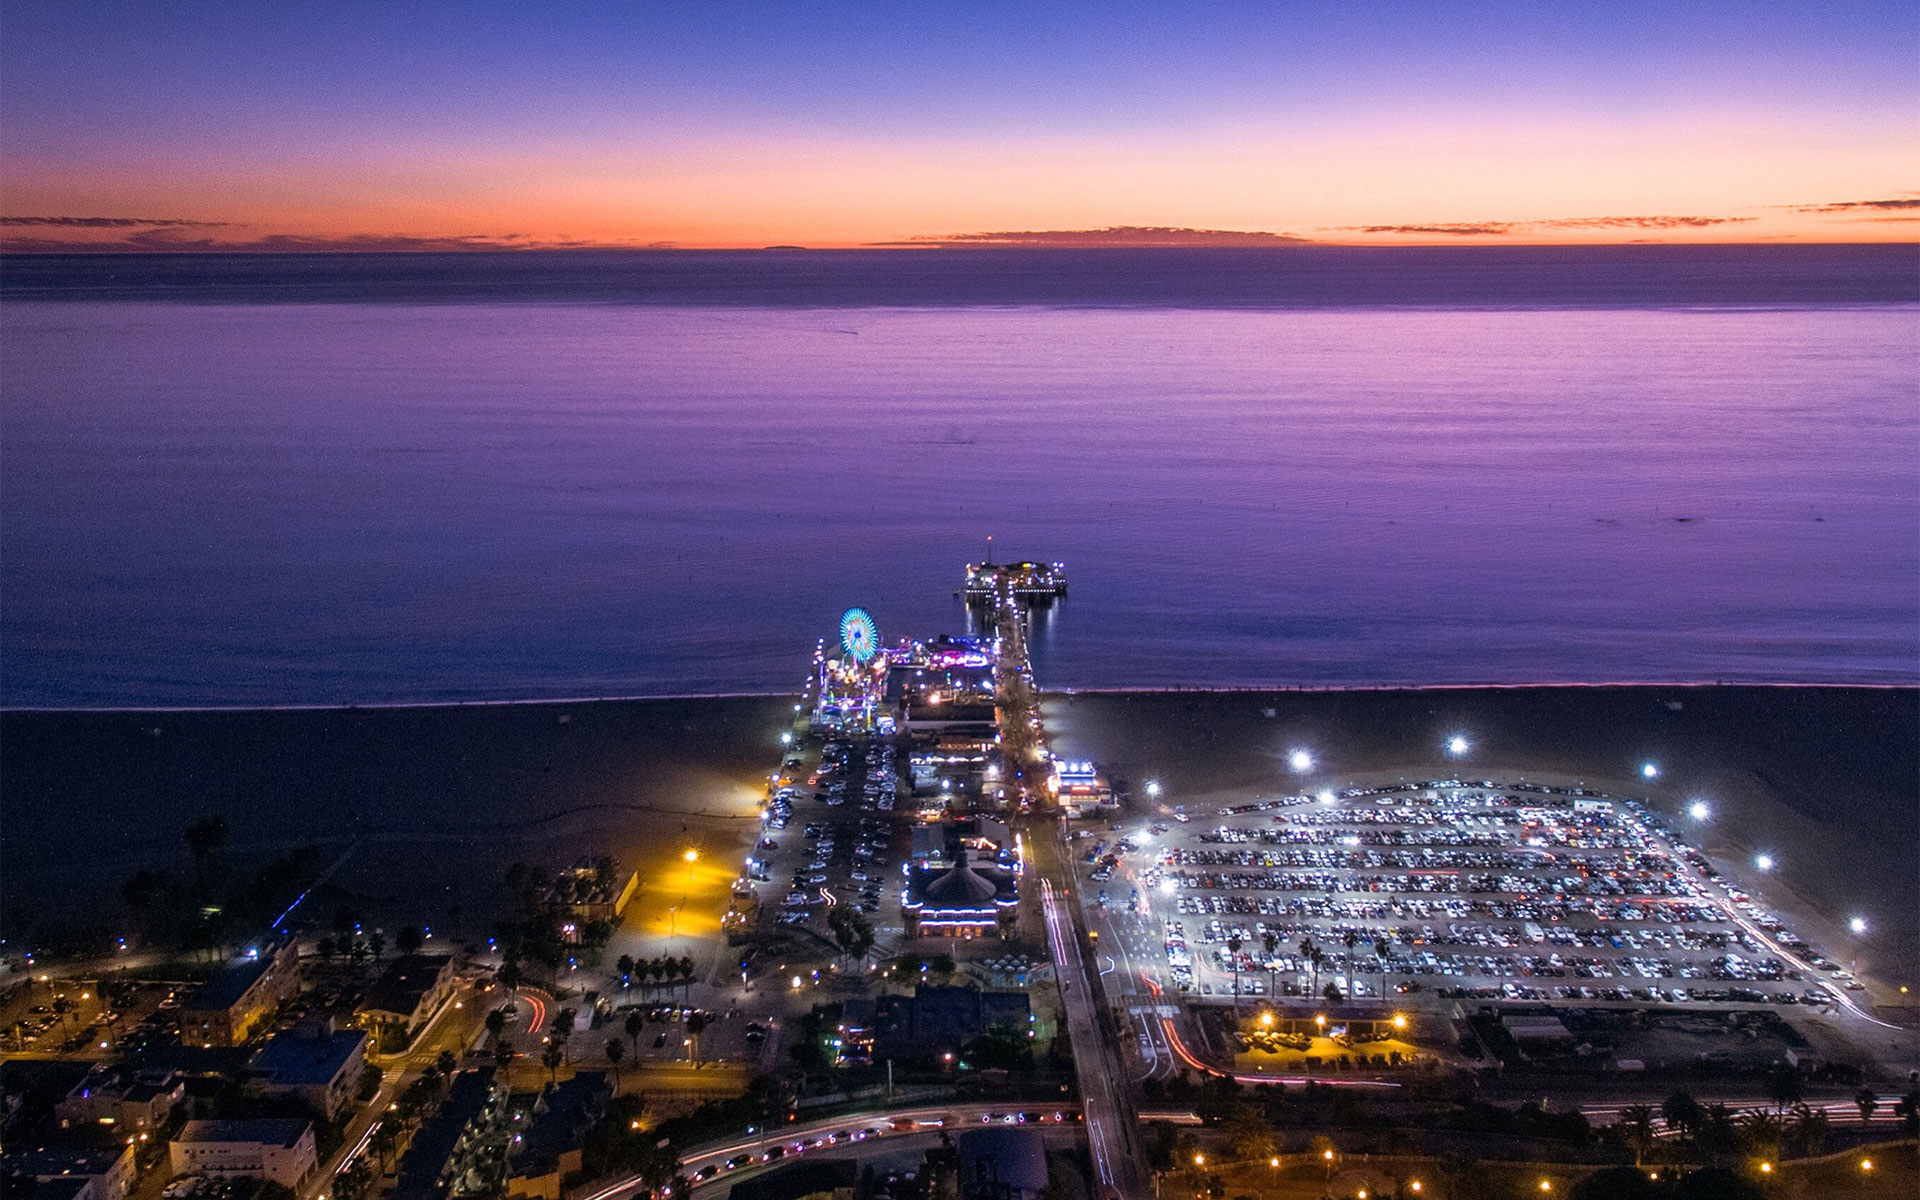 Santa Monica pier at sunset. Los Angeles Helicopter Tours